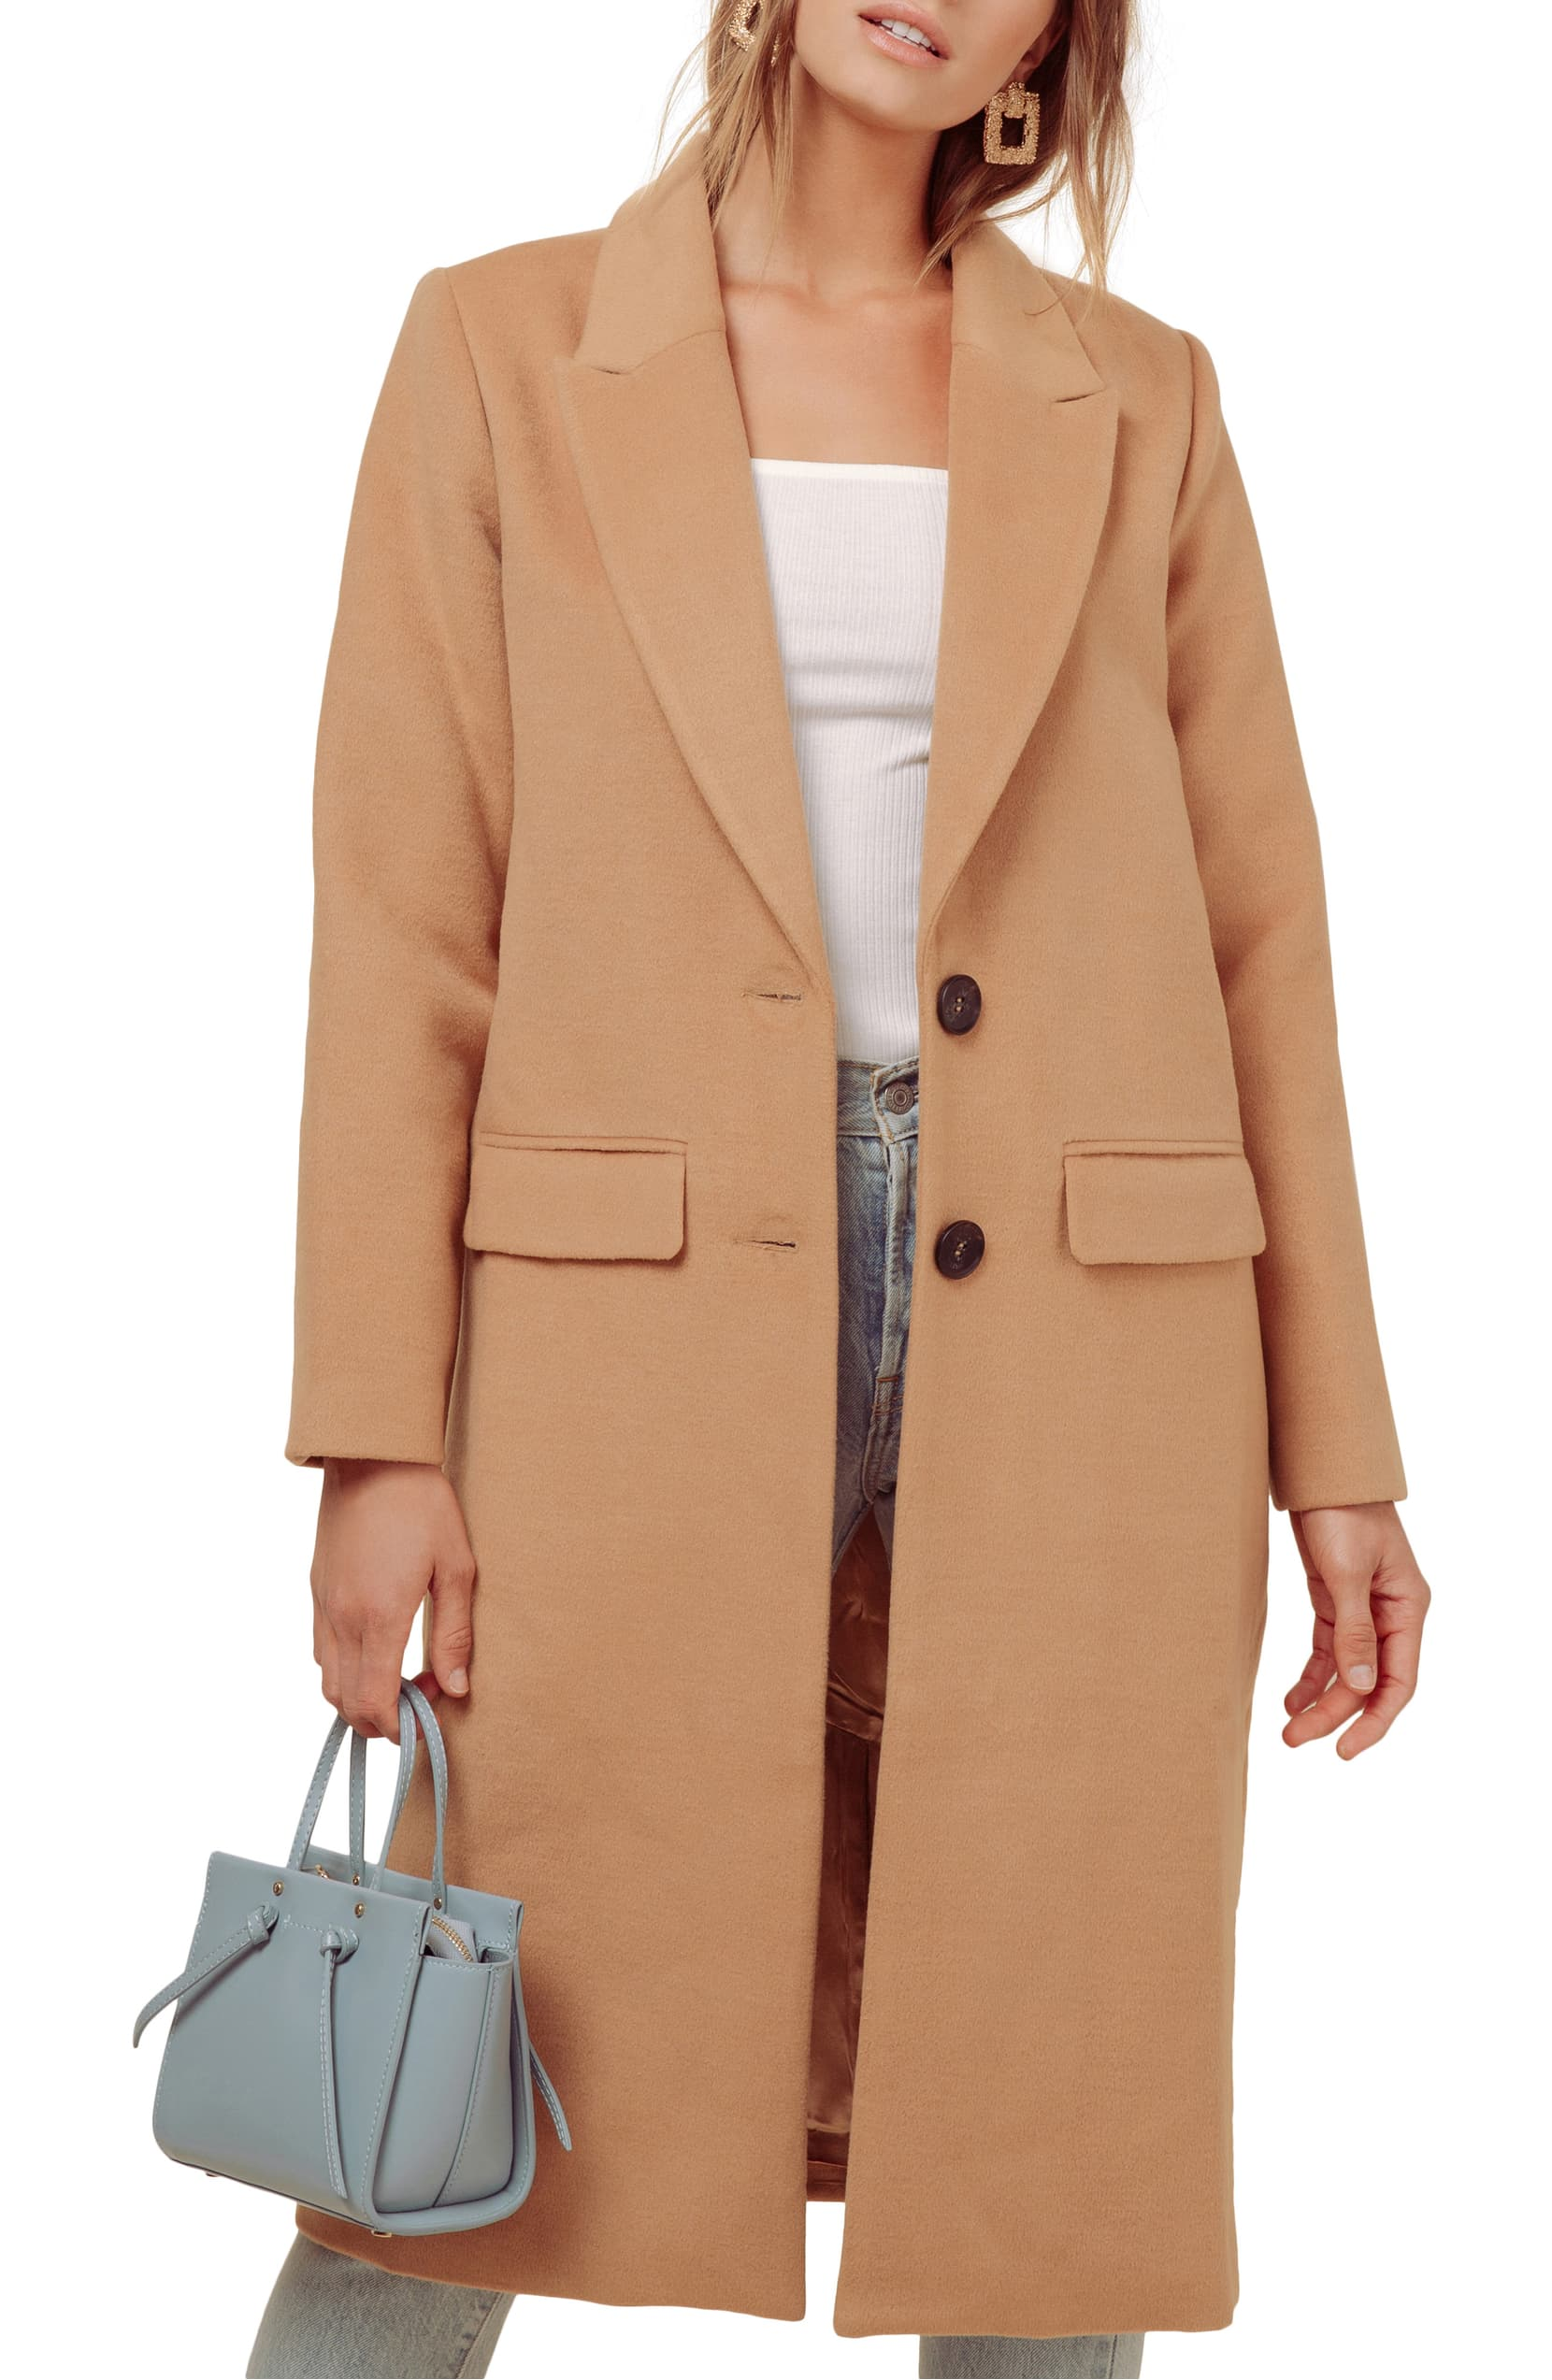 Amp up your sophistication level in this soft camel coat designed in a longline fit for warm, work-to-play polish. Shop it{ }- $178. (Image: Nordstrom){ }